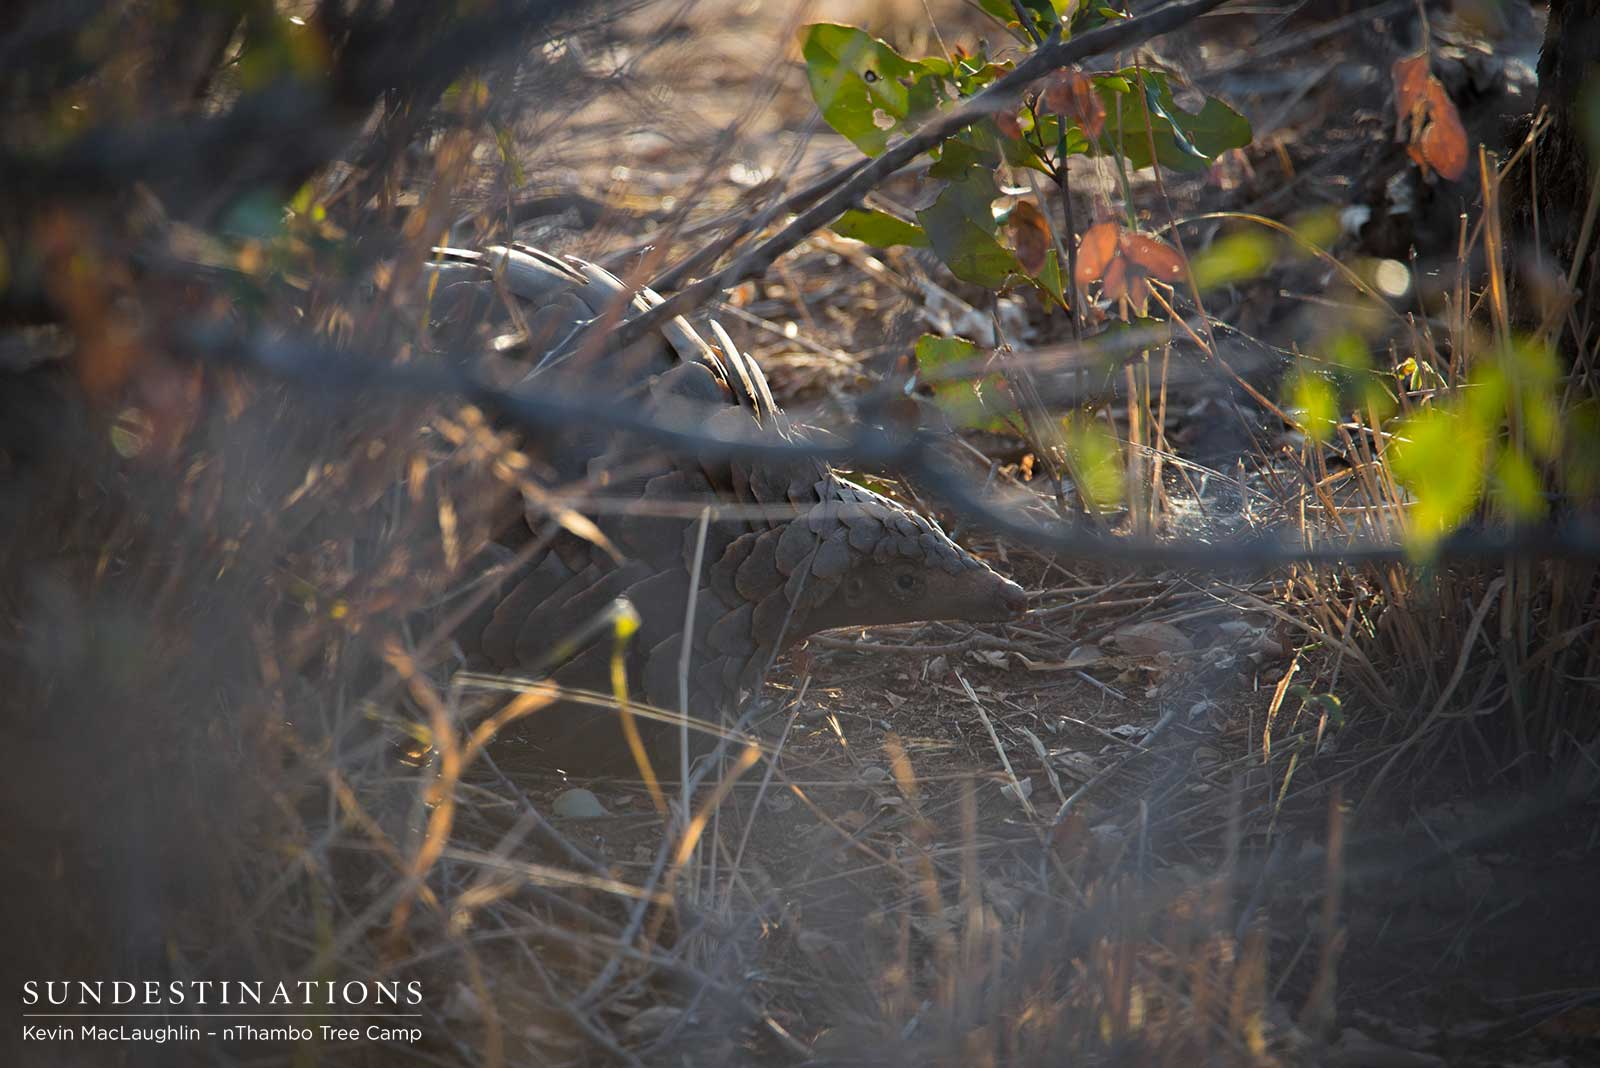 Jackpot! A Wild Pangolin Spotted on Game Drive